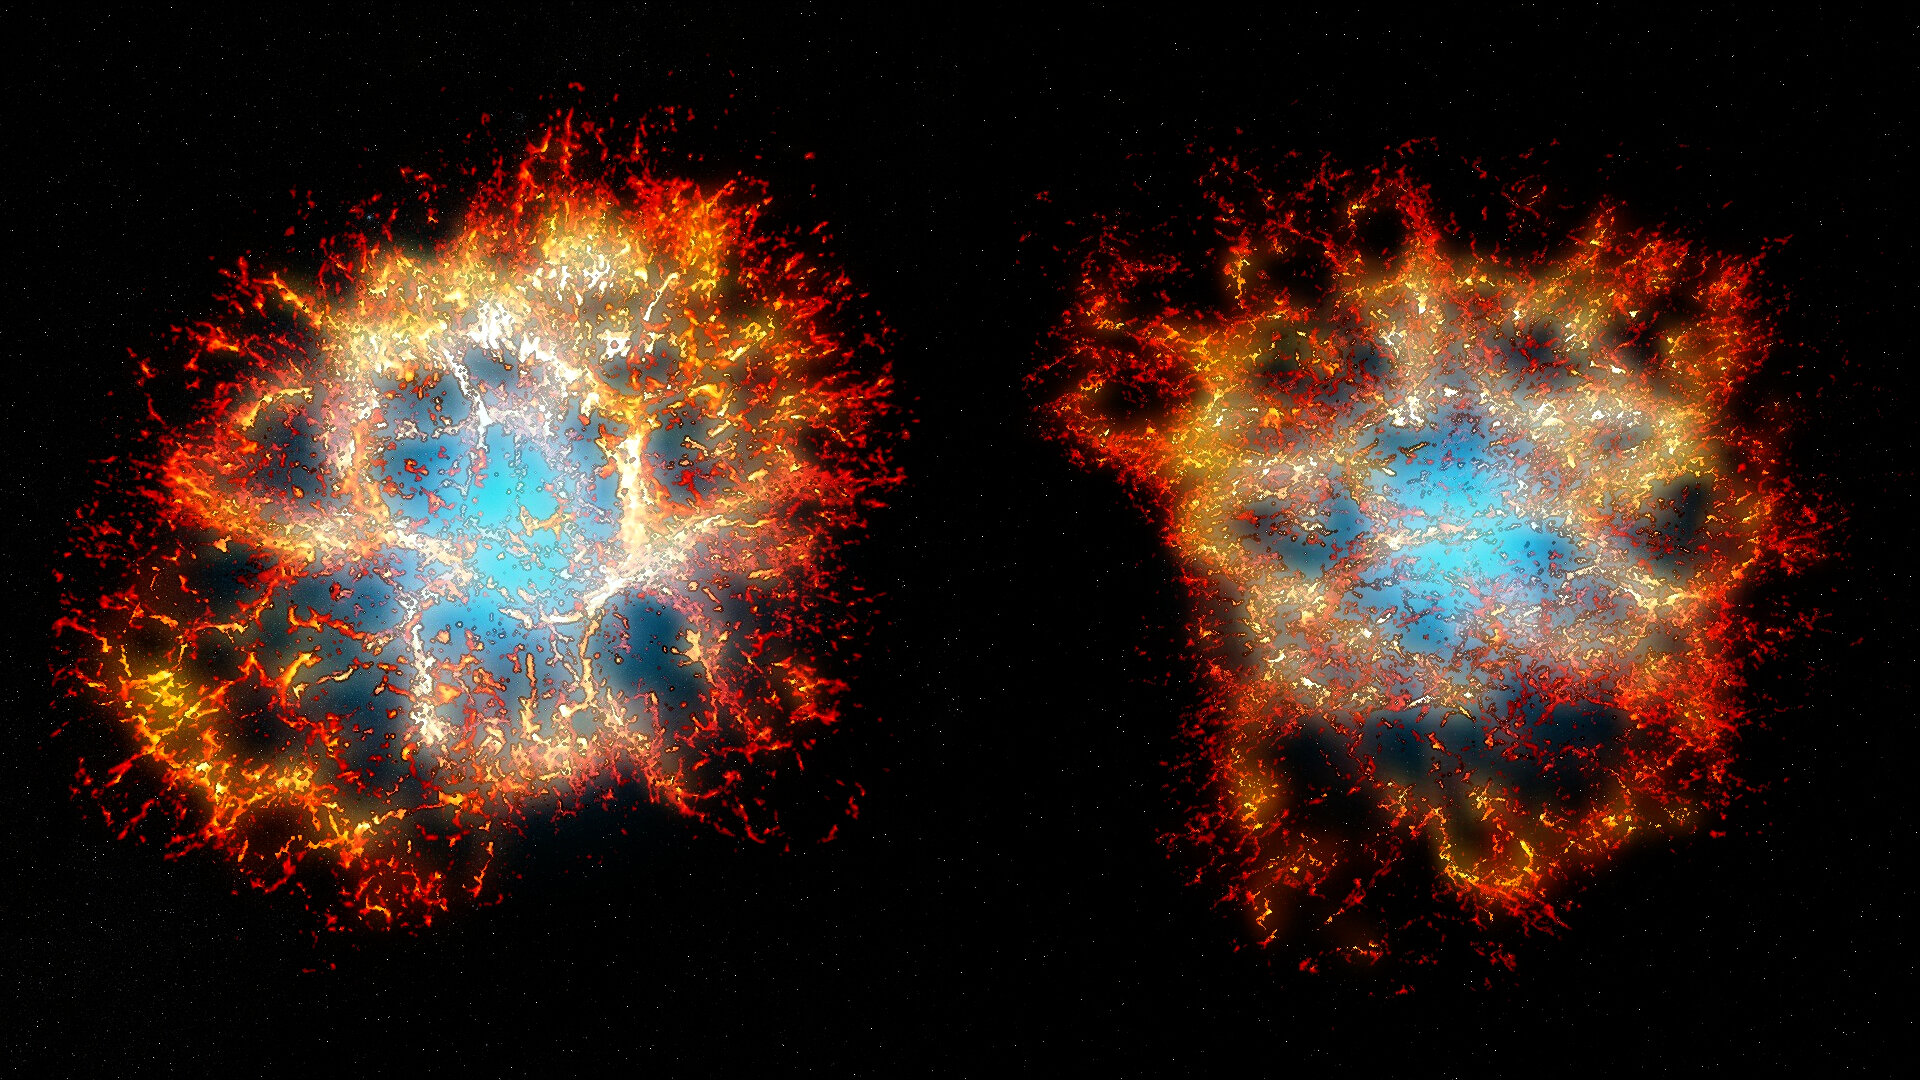 Spectacular 'honeycomb heart' revealed in iconic stellar explosion